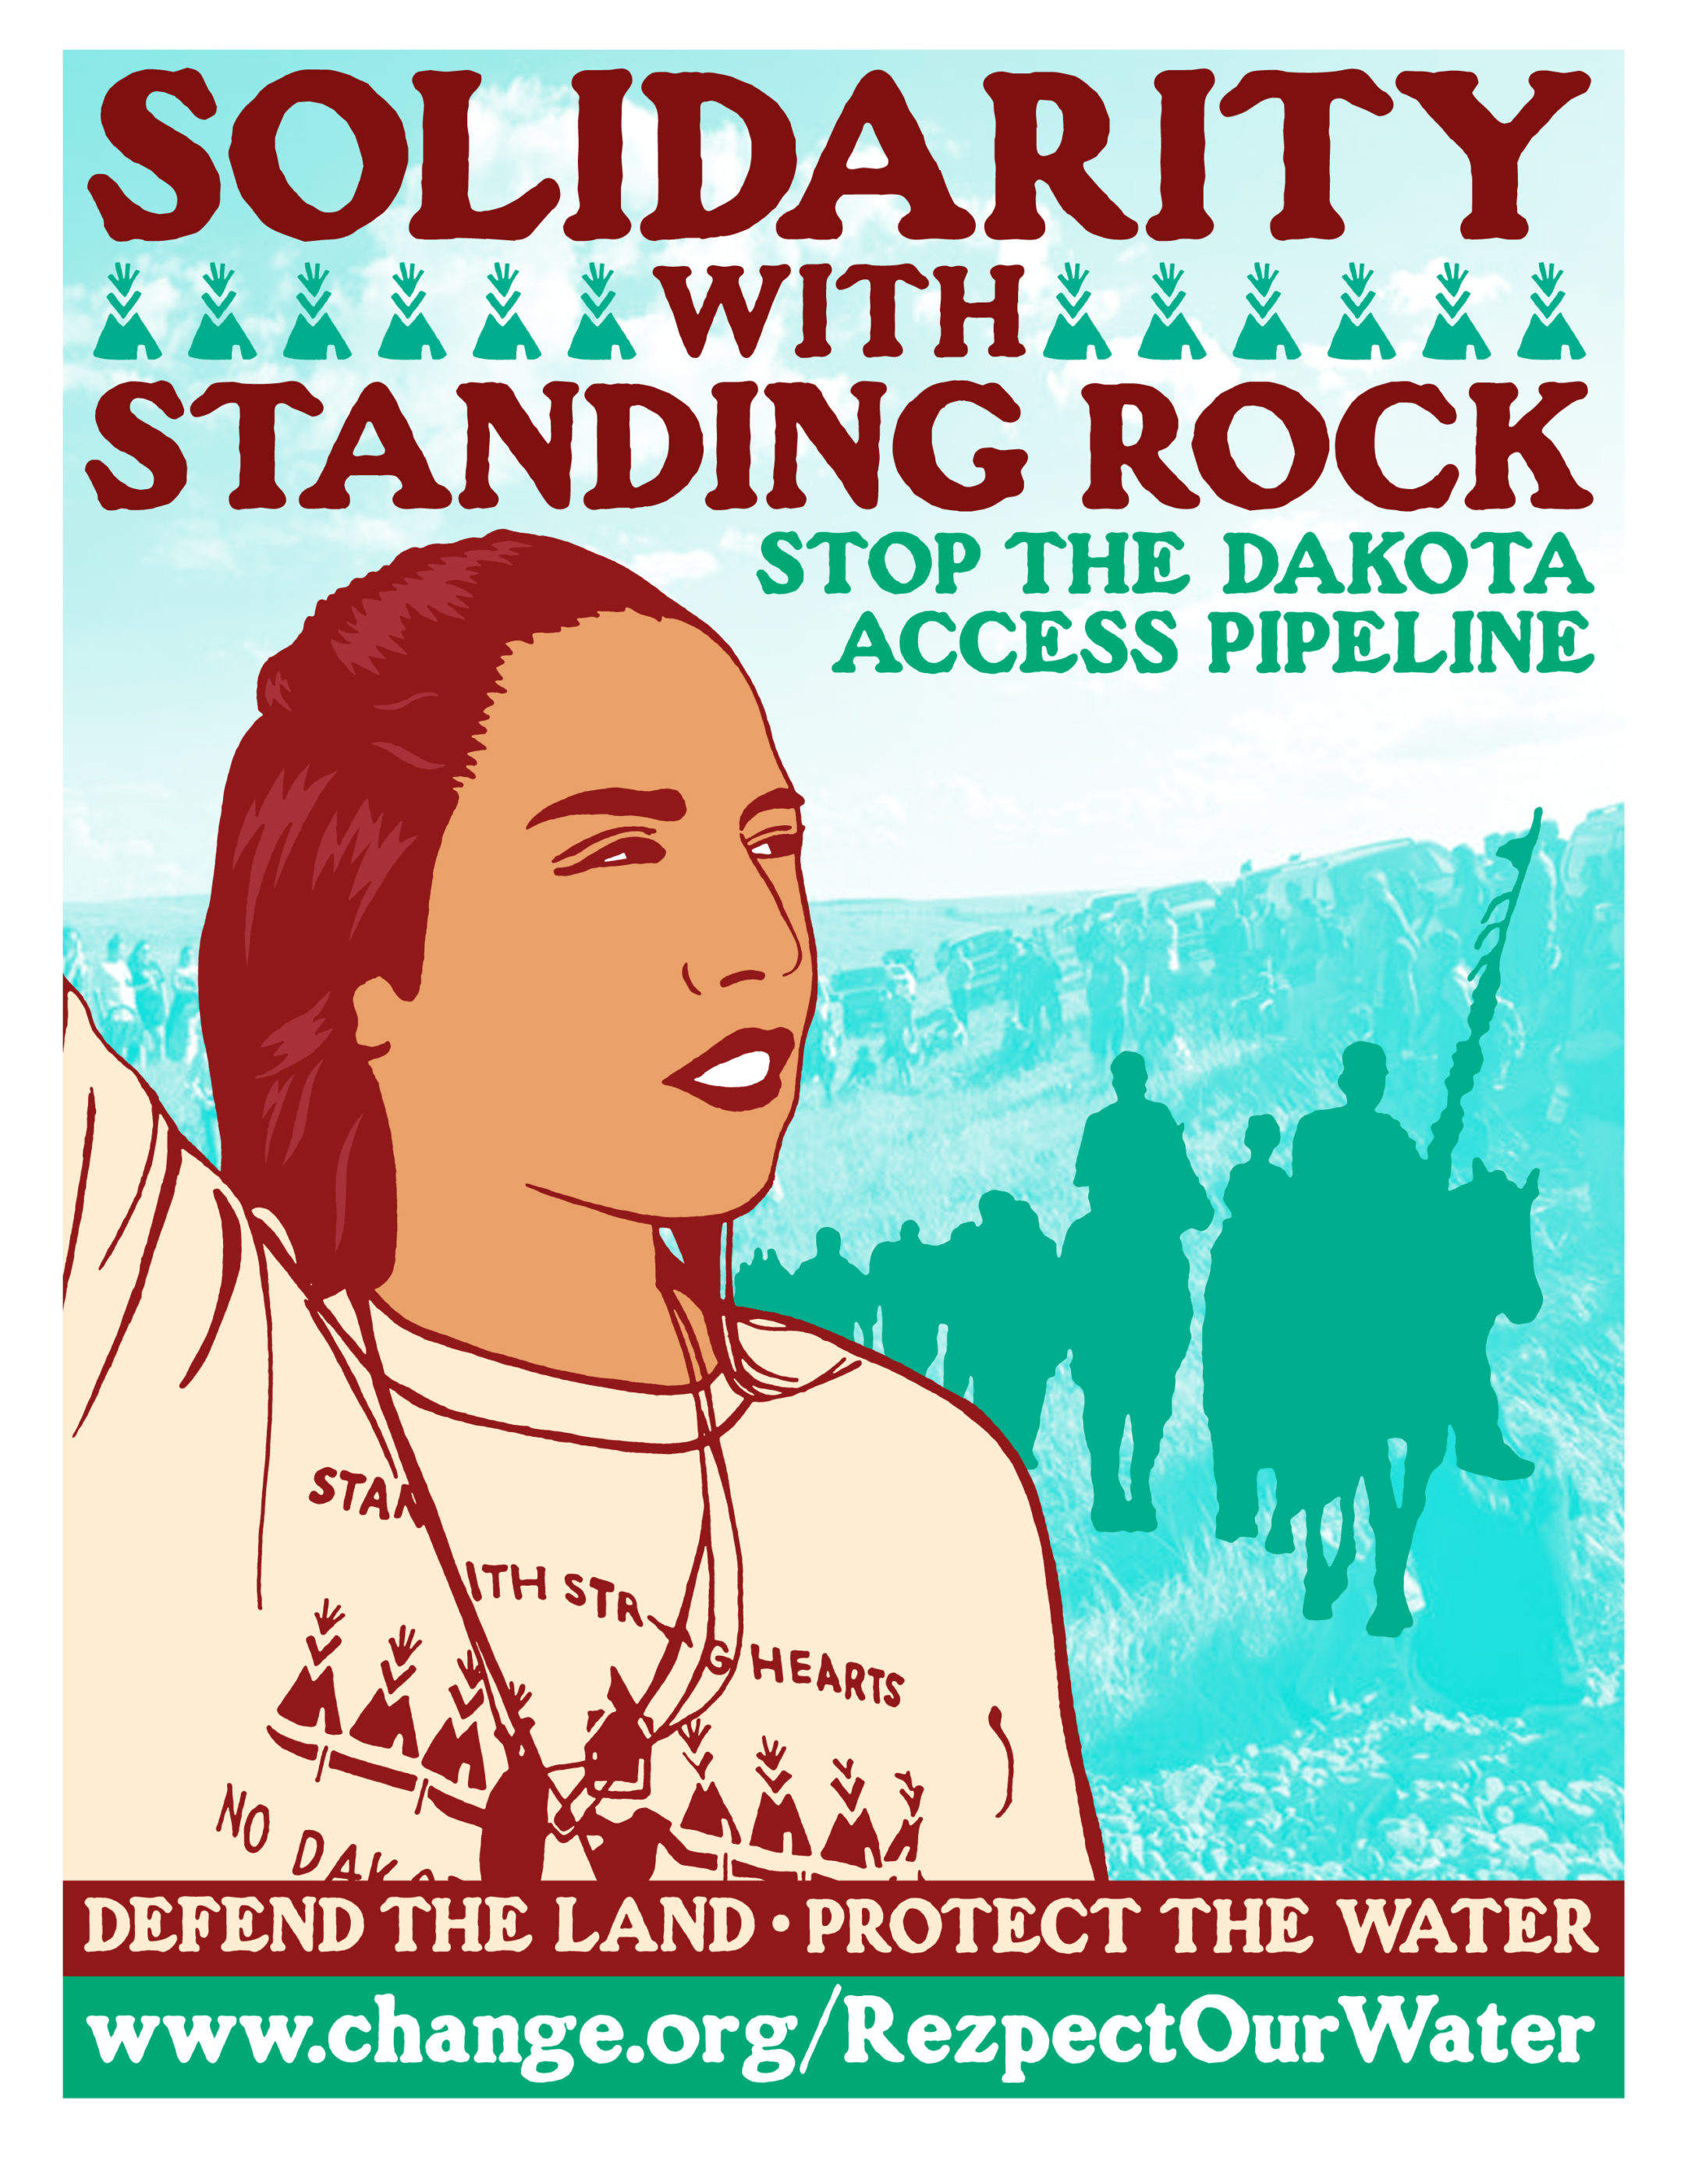 Solidarity with Standing Rock graphic by Jesus Barraza & Melanie Cervantes